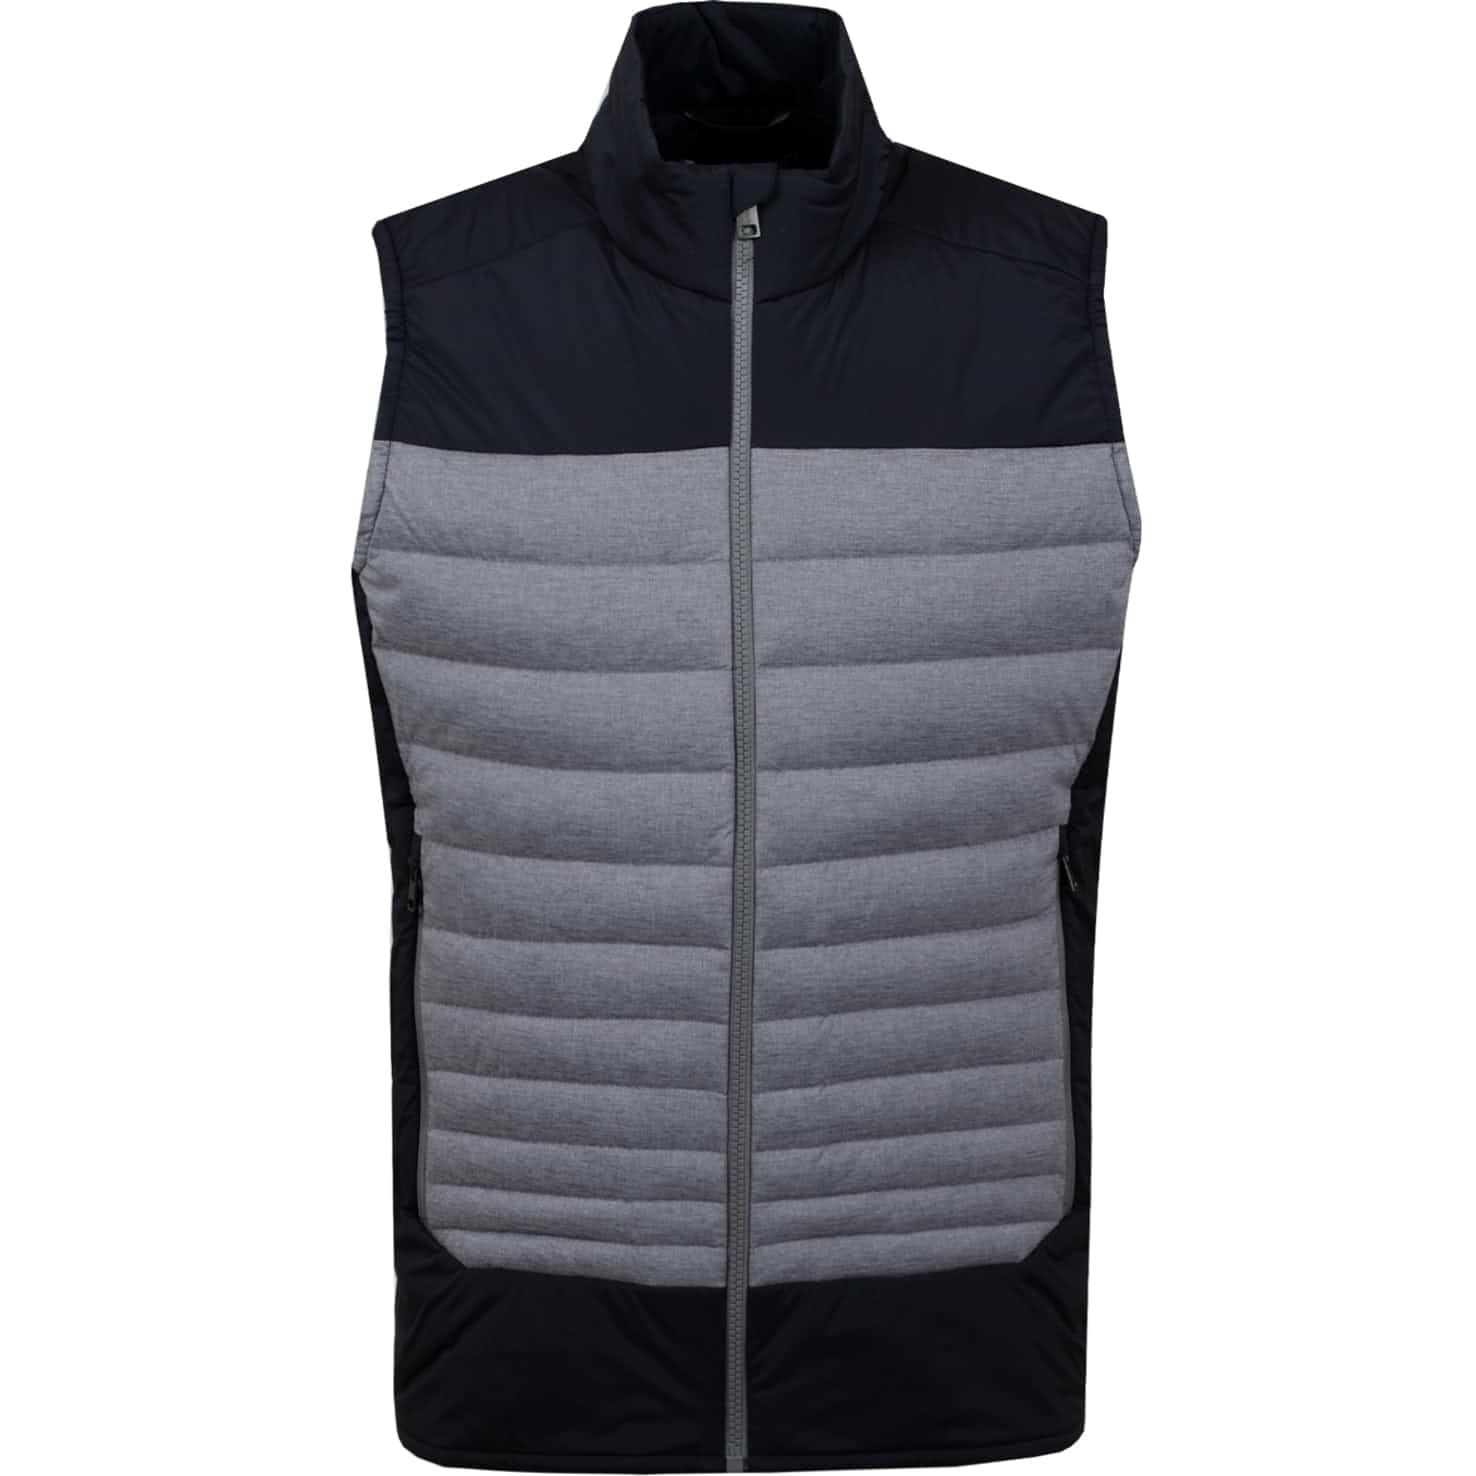 Blackcomb Stretch Vest Steel Grey Melange/Black - AW19